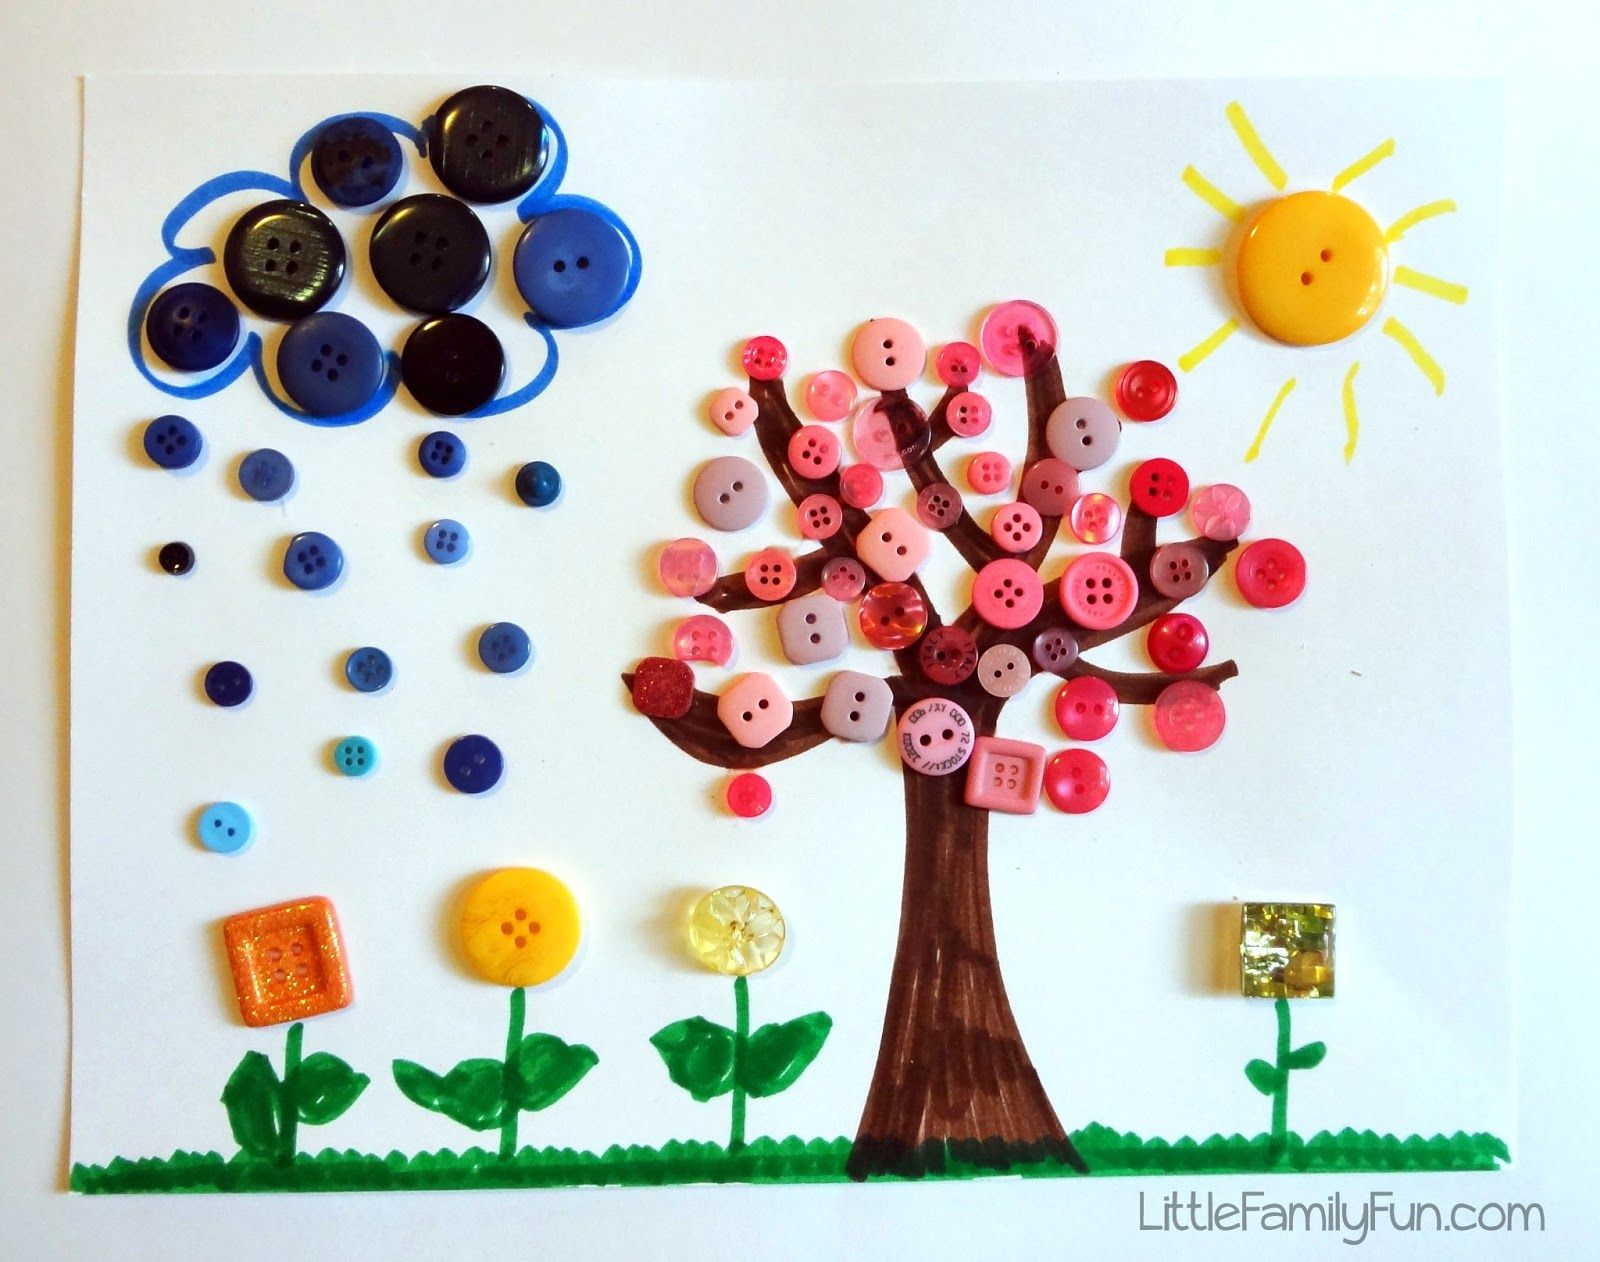 Little Family Fun Spring Button Craft For Kids Pick Buttons All One Color To Show Which Is Or Have Them Say The Colors While Putting